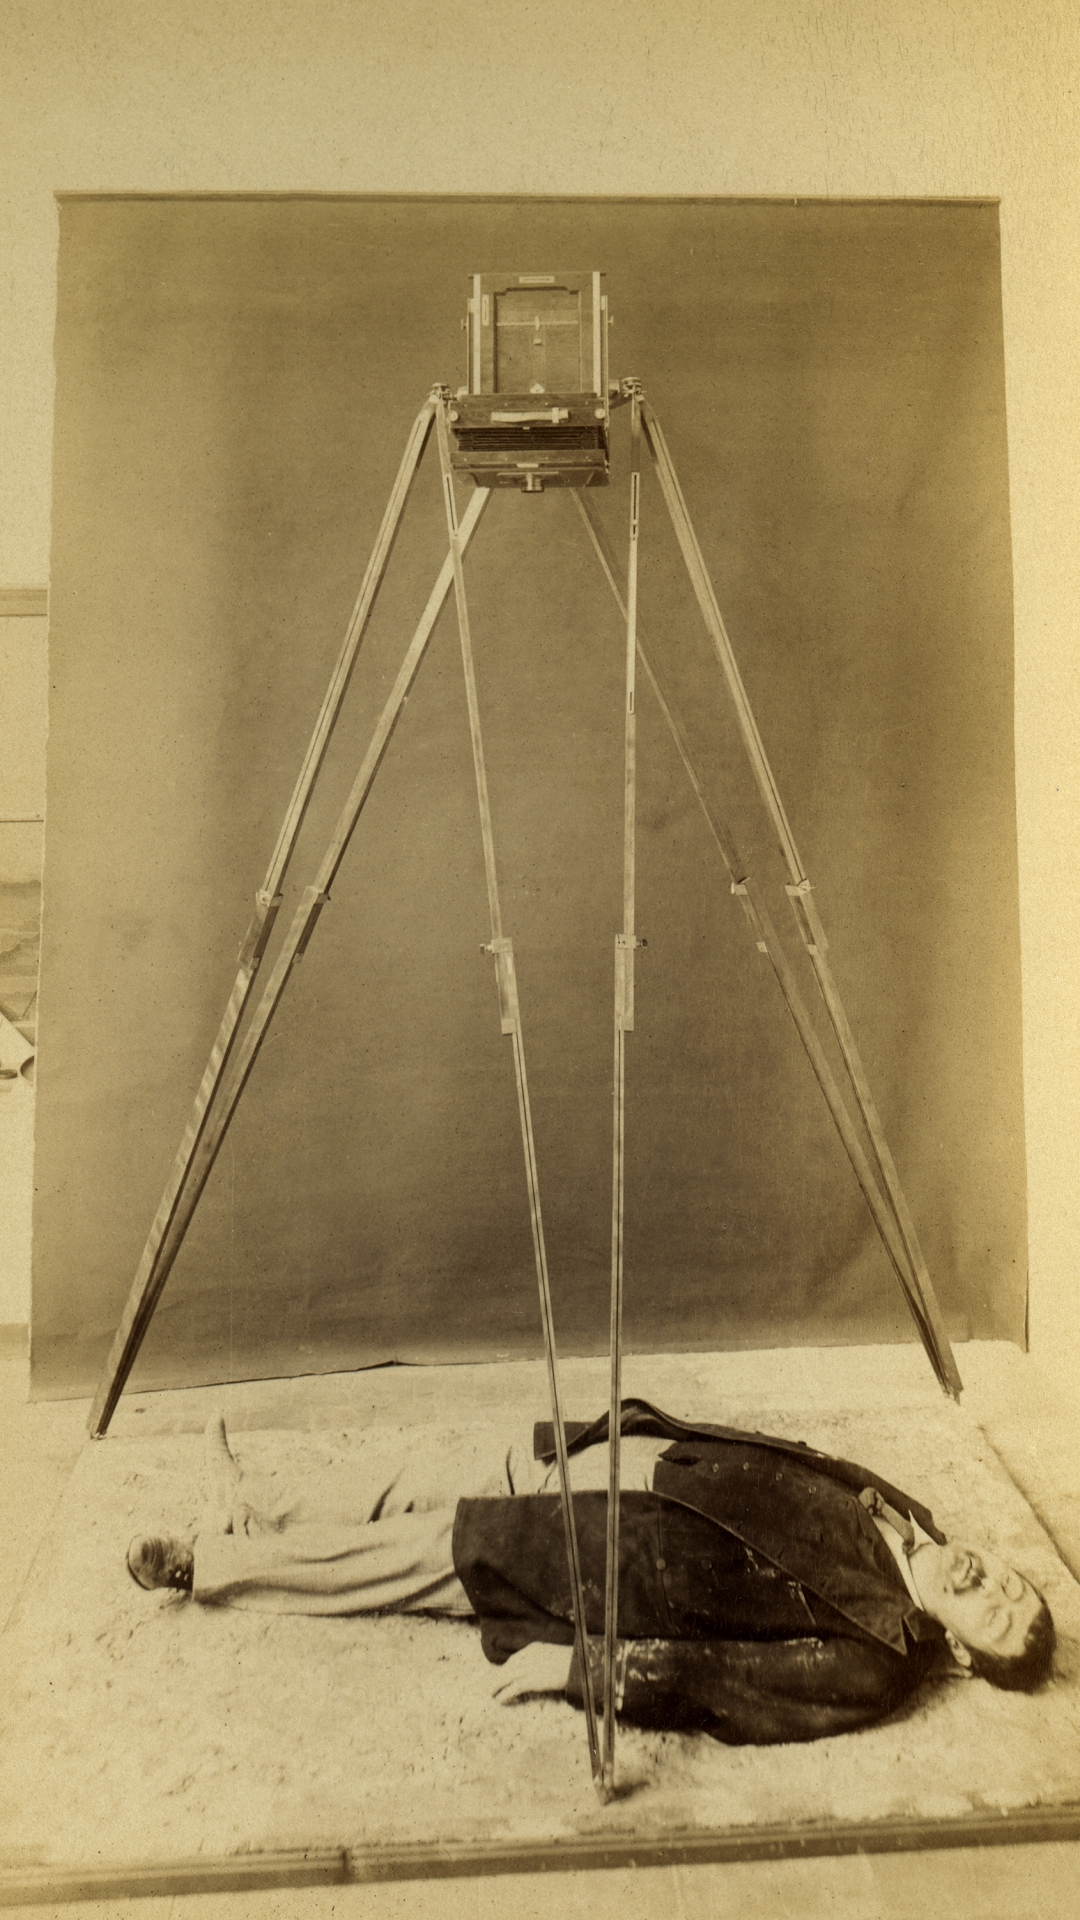 As part of his scientific system of documenting crime scenes, Alphonse Bertillon developed a tripod from which dead bodies could be photographed from above. It was called the 'God's-eye view.' Paris, 1894. (Credit: Adoc-Photos/Corbis via Getty Images)